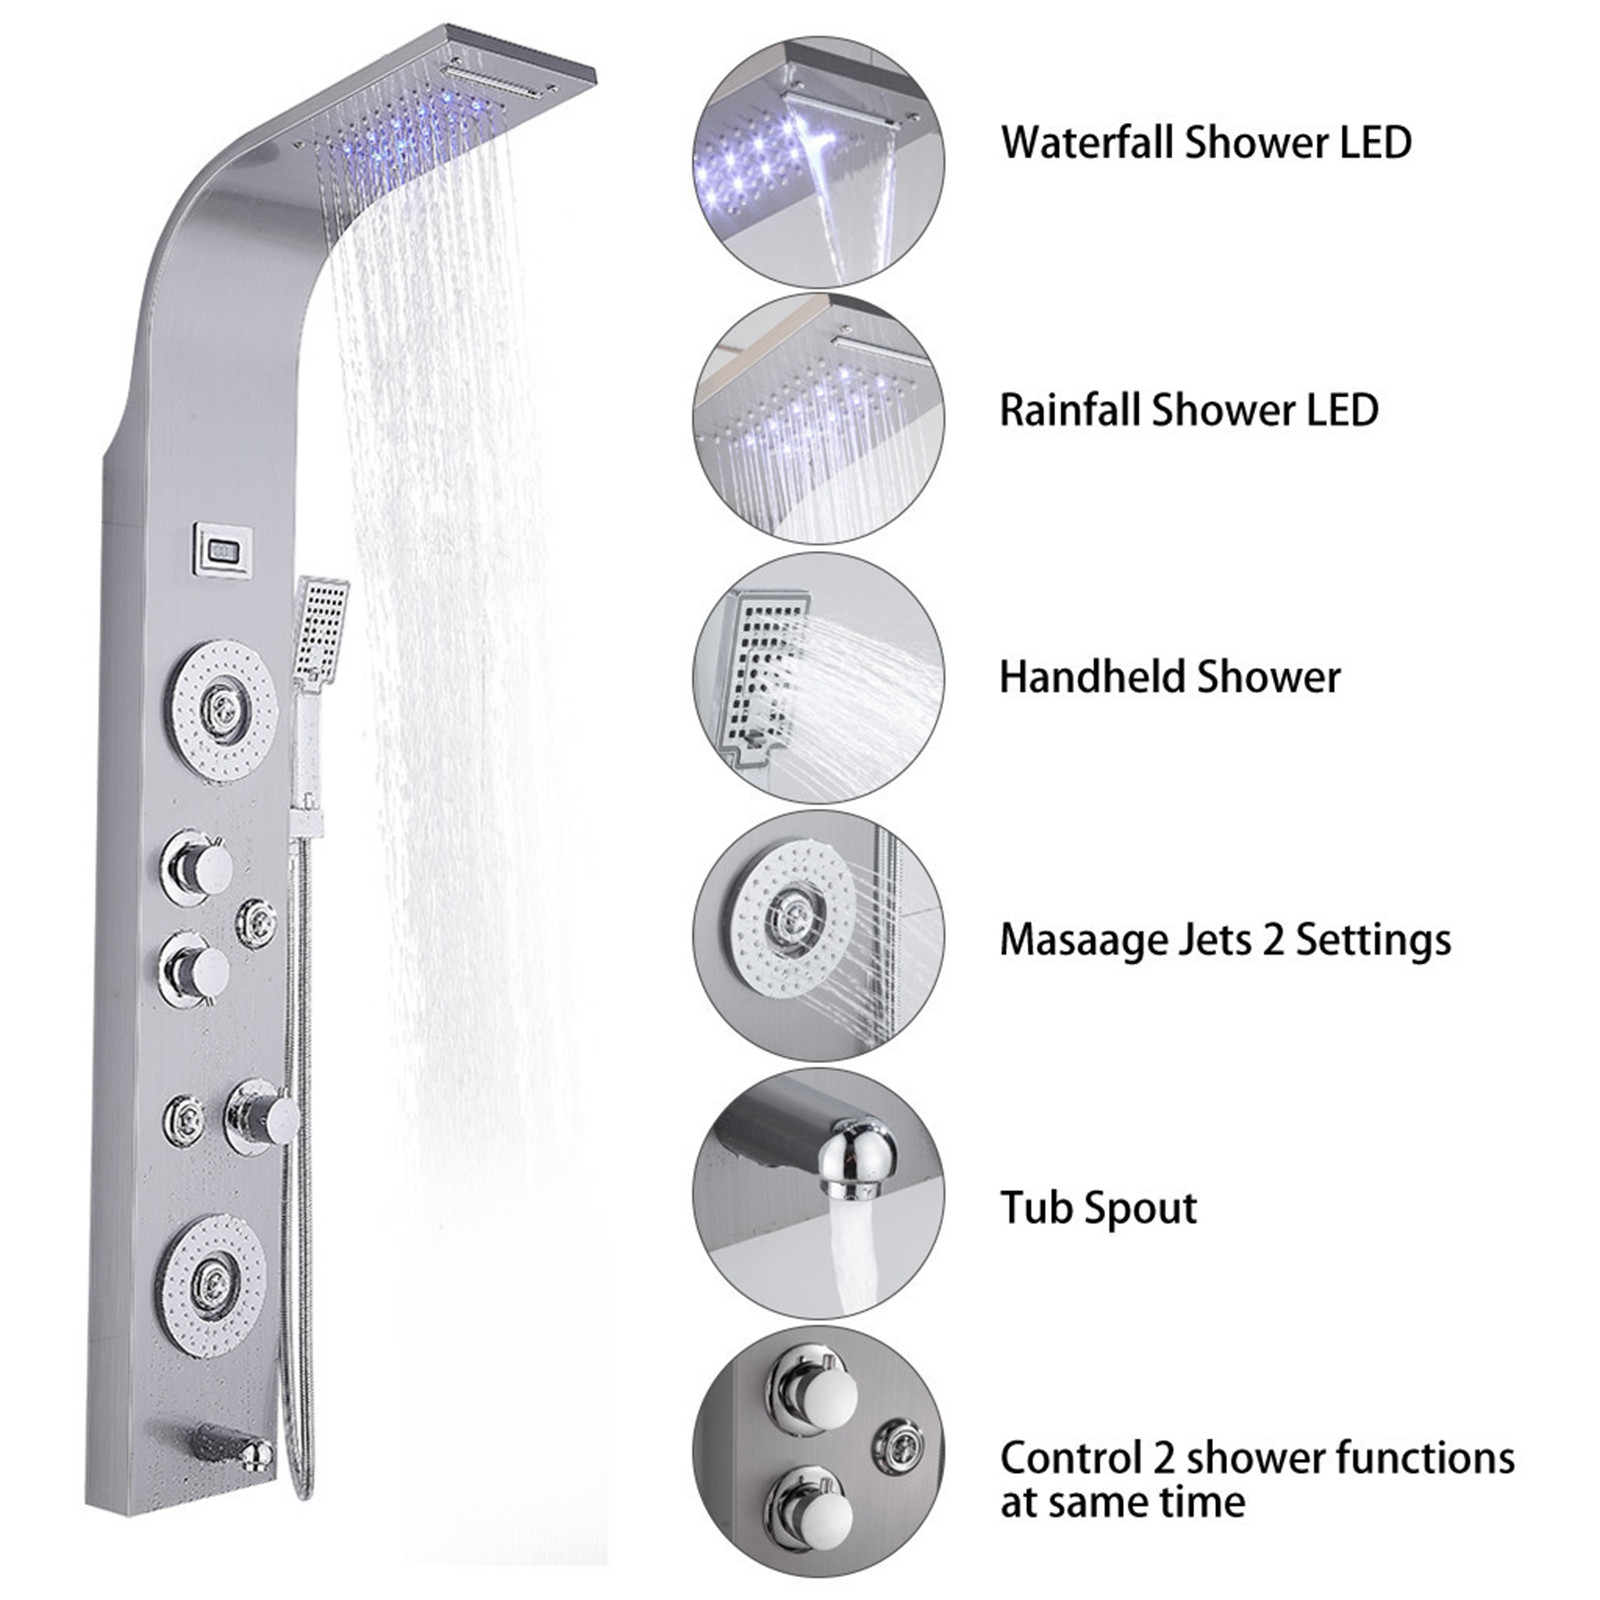 Brushed Nickel Wall Mounted VAHIGCY Shower Panel Tower System Stainless Steel LED Rainfall Waterfall Shower Head 6-Function Faucet Rain Massage System with Body Jets